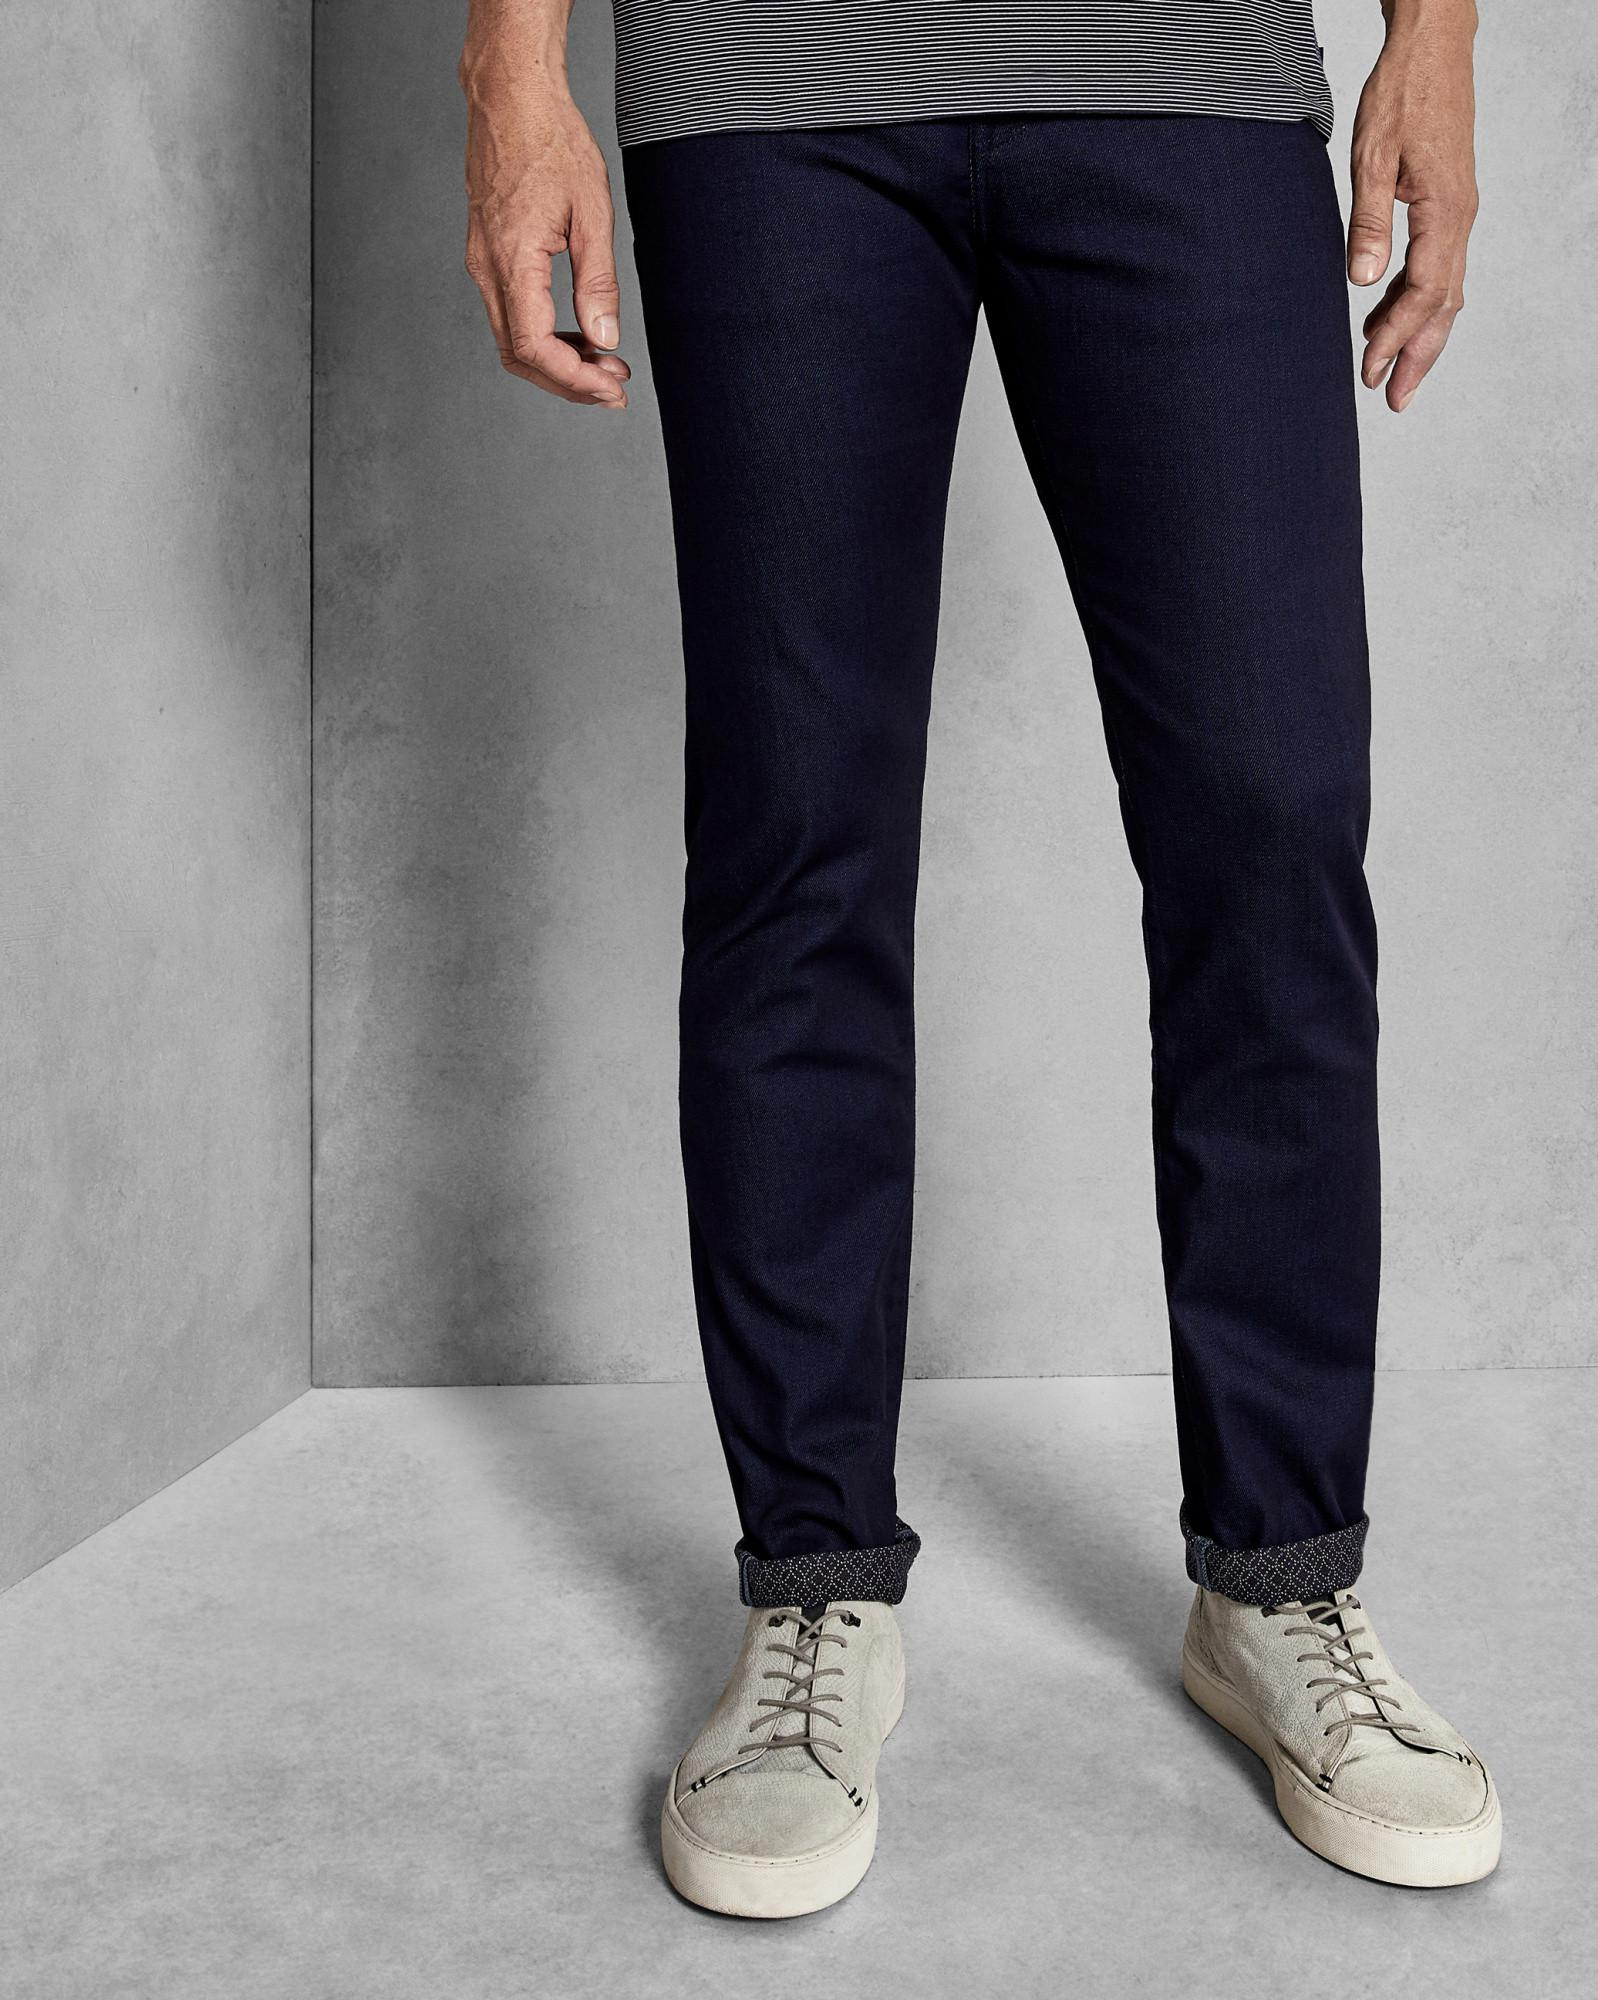 91ac54940f50 Ted Baker Tall Straight Fit Jeans in Blue for Men - Lyst